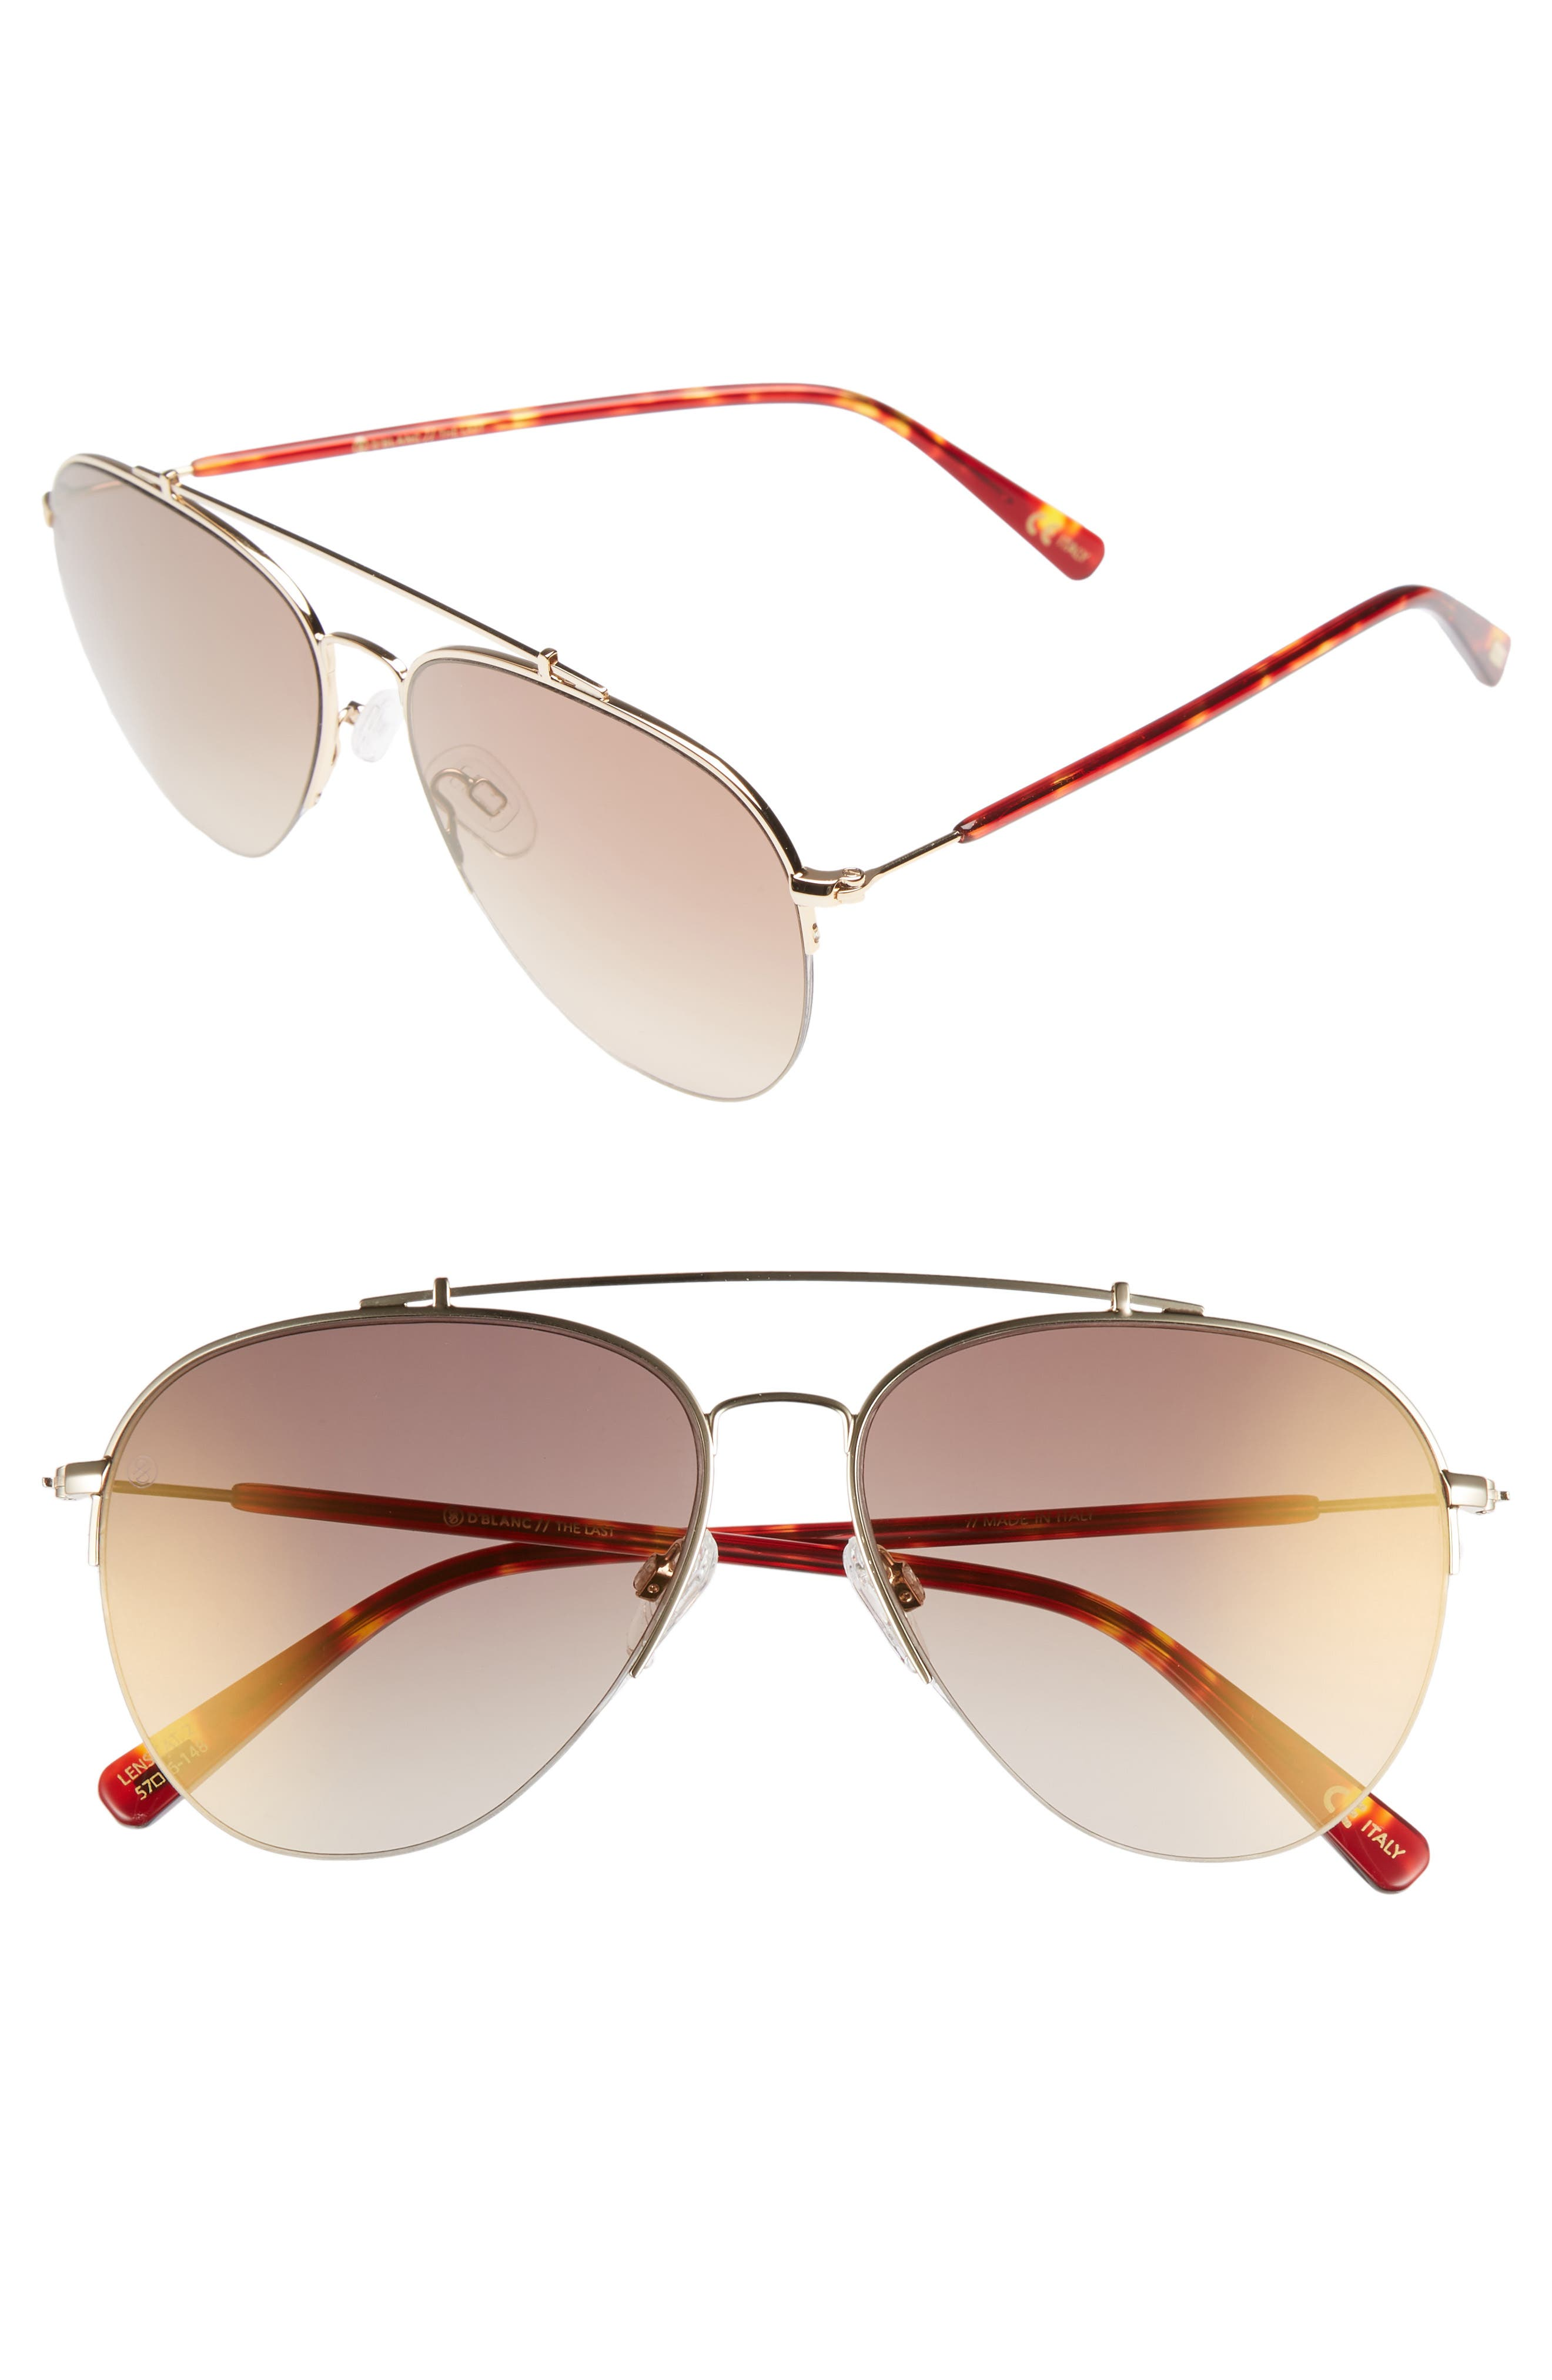 D'BLANC The Last 57mm Aviator Sunglasses,                         Main,                         color, Toffee/ Brown